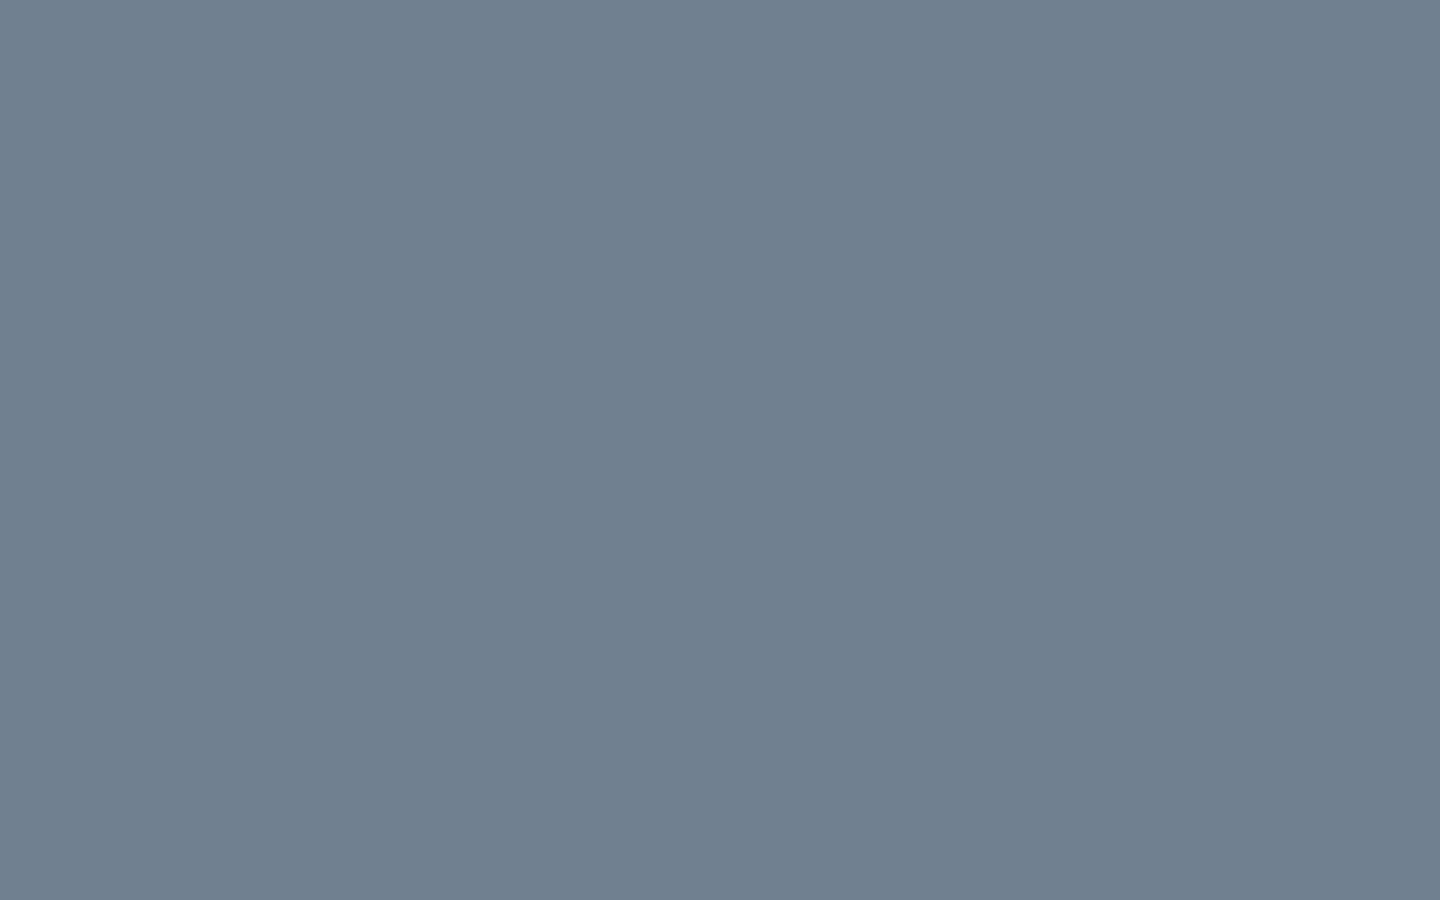 1440x900 Slate Gray Solid Color Background